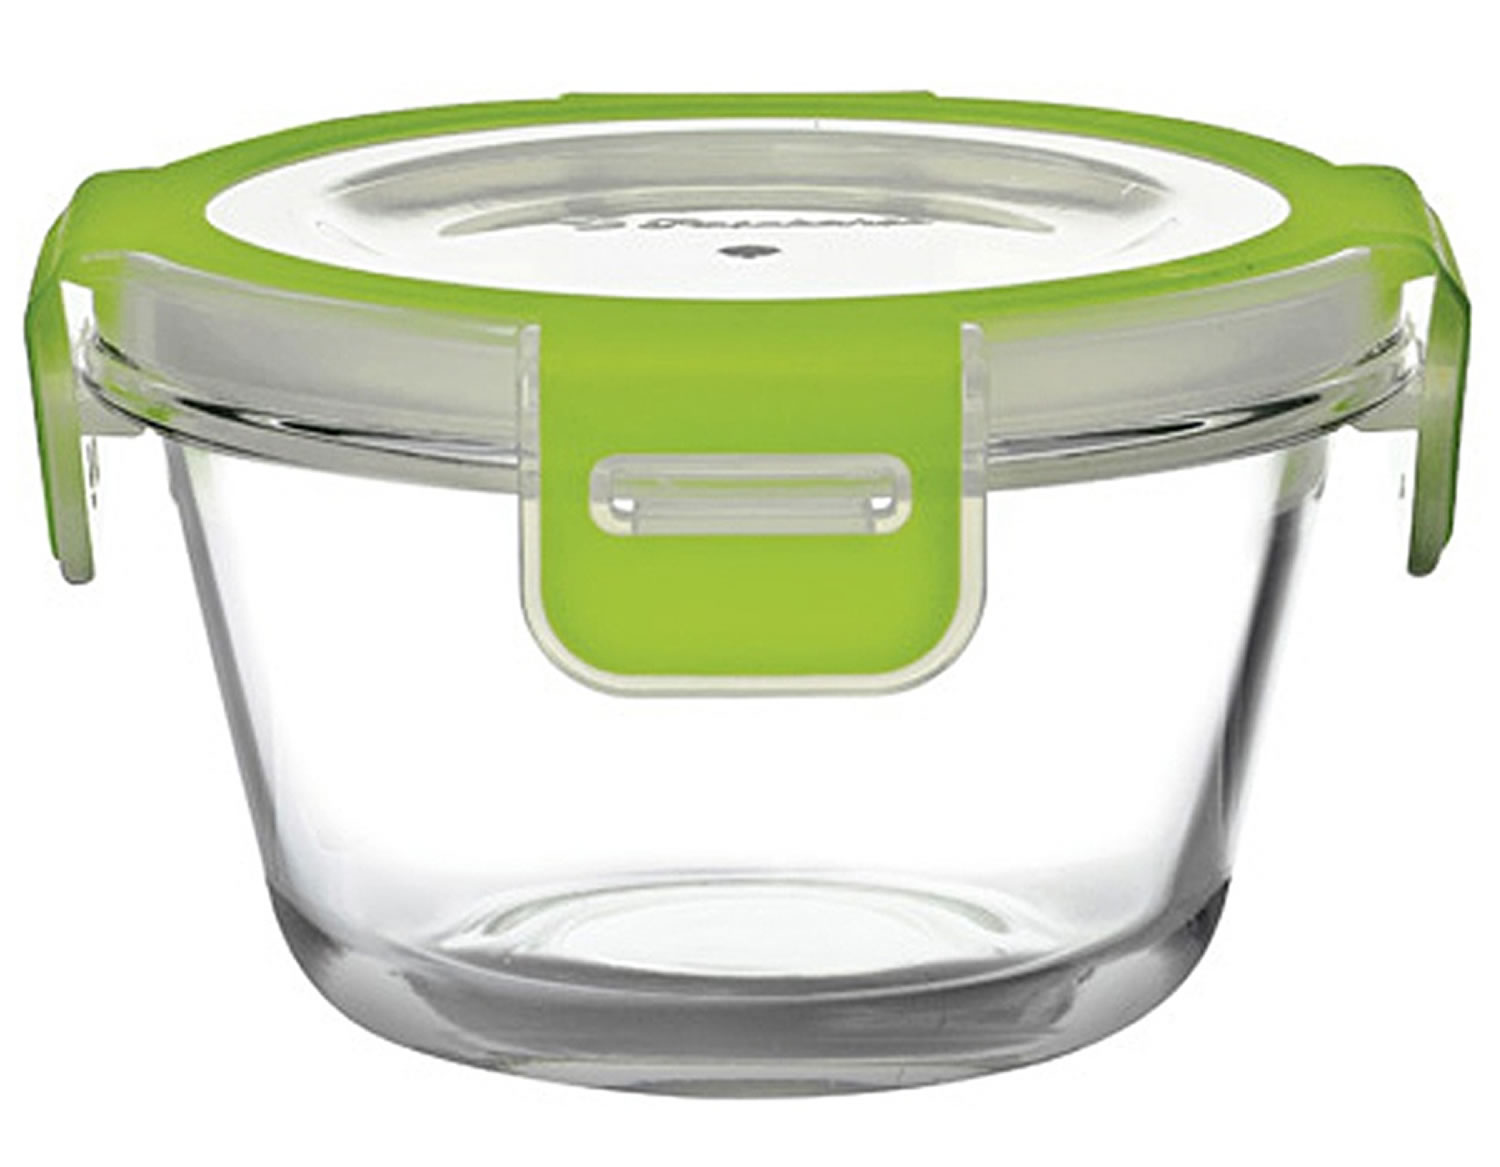 pasabahce storemax glass food container green lid lunch. Black Bedroom Furniture Sets. Home Design Ideas